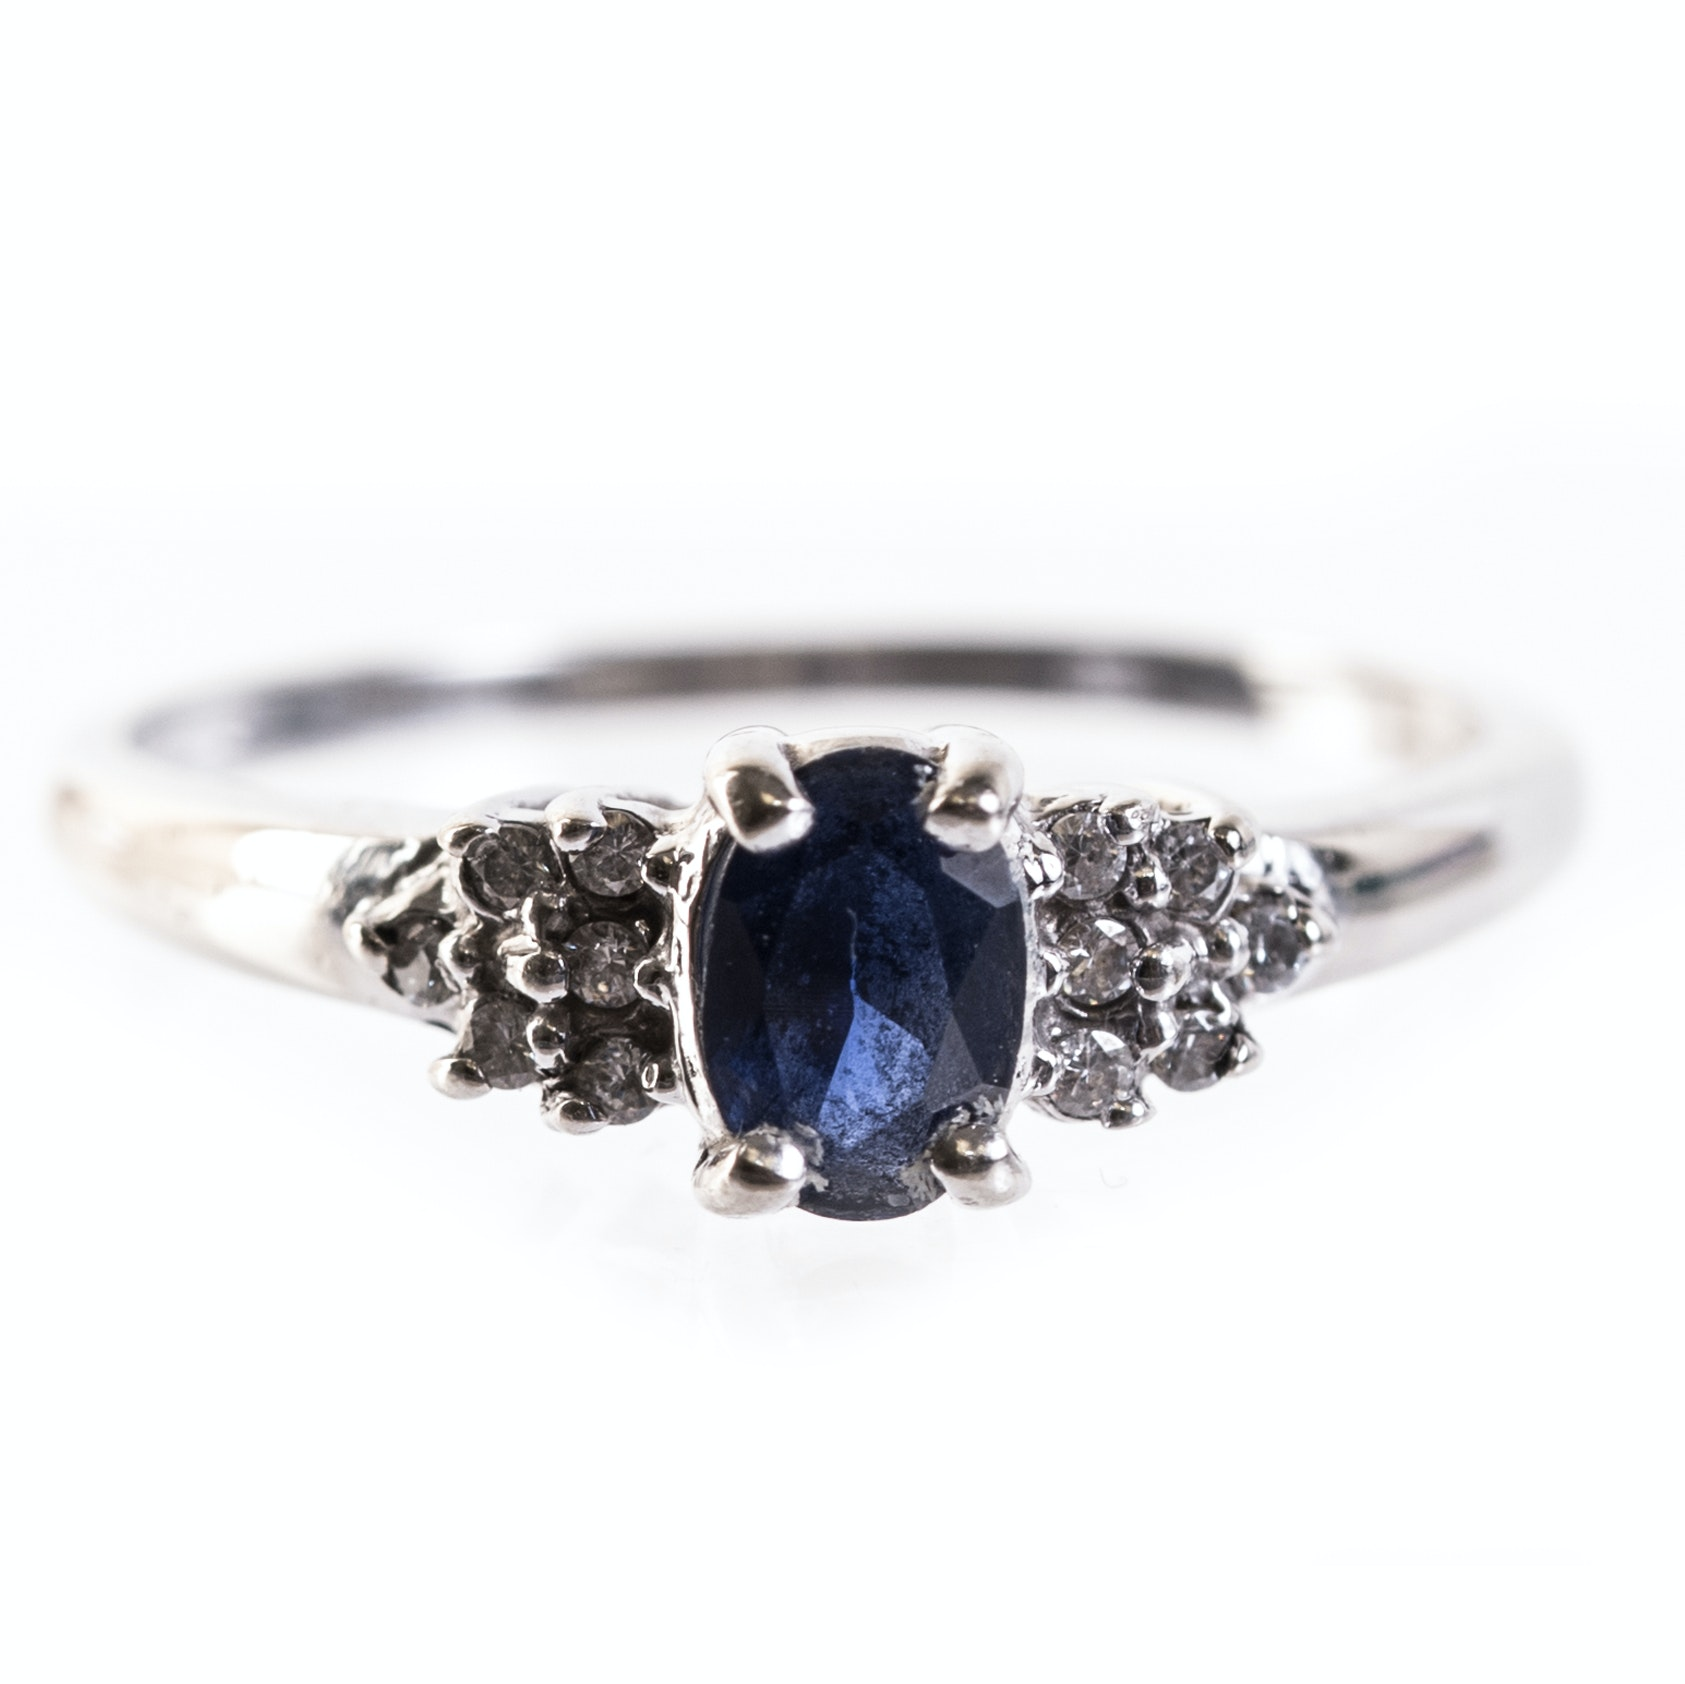 10K White Gold, Sapphire, and Cubic Zirconia Ring